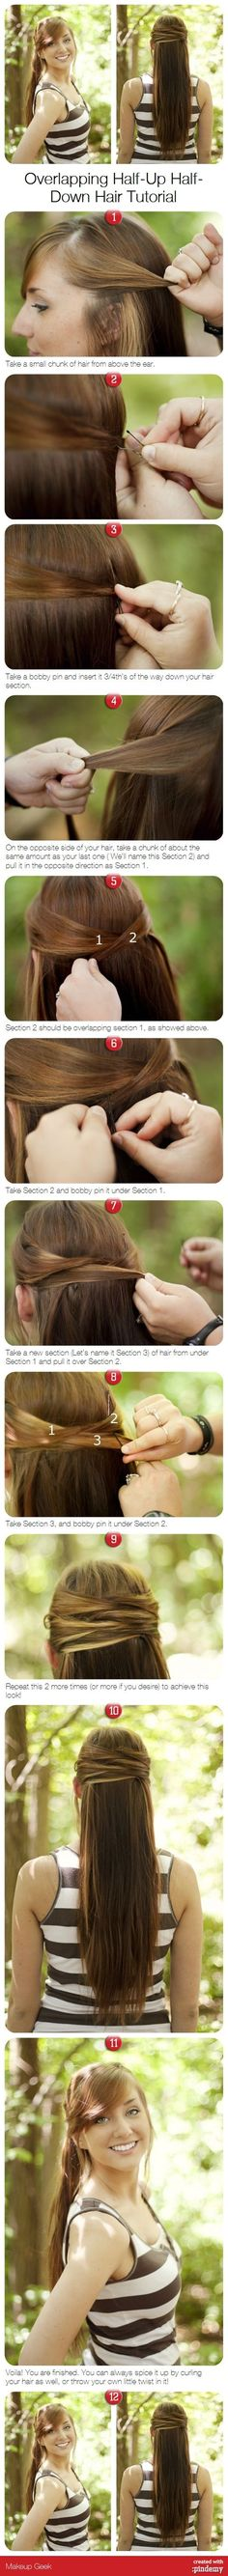 Overlapping half-up half down step by step hair tutorial